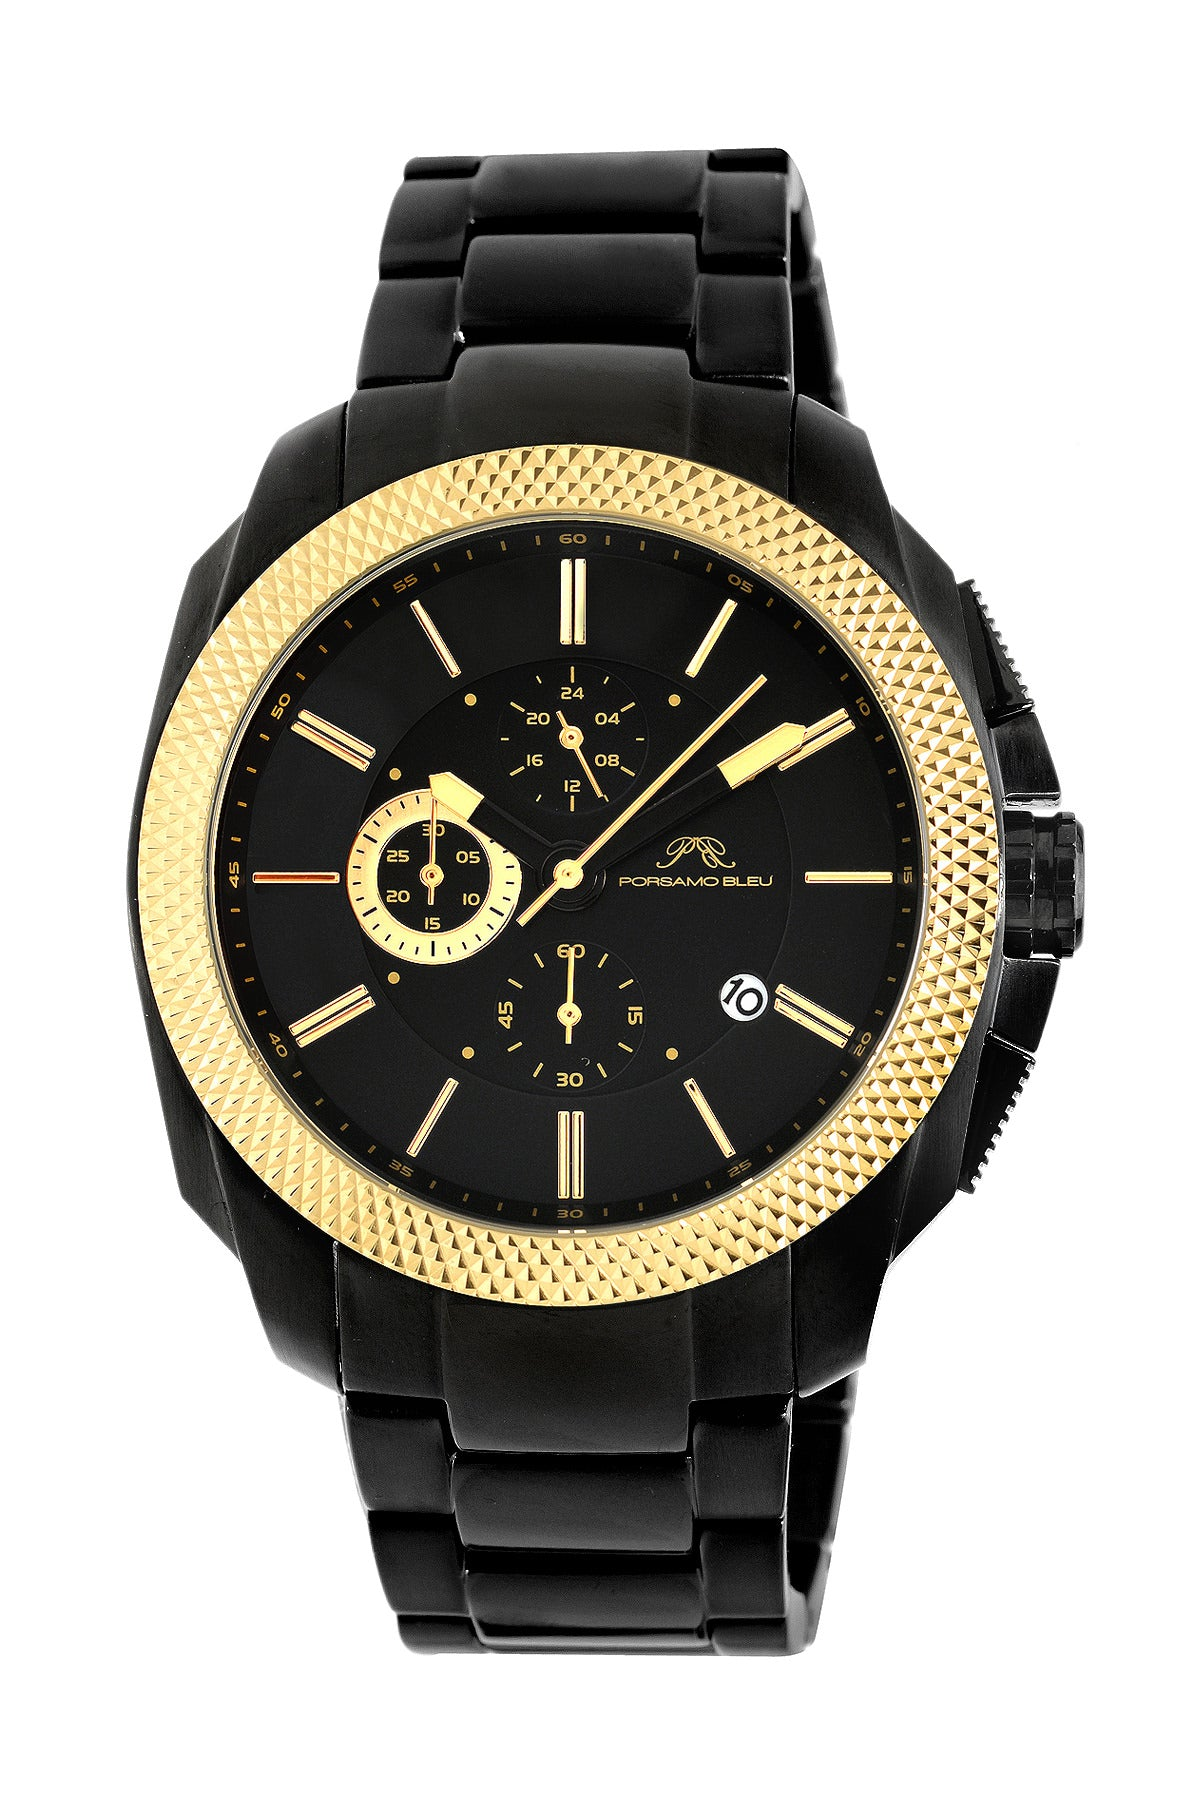 Porsamo Bleu Niccolo luxury chronograph men's stainless steel watch, gold, black 331BNIS